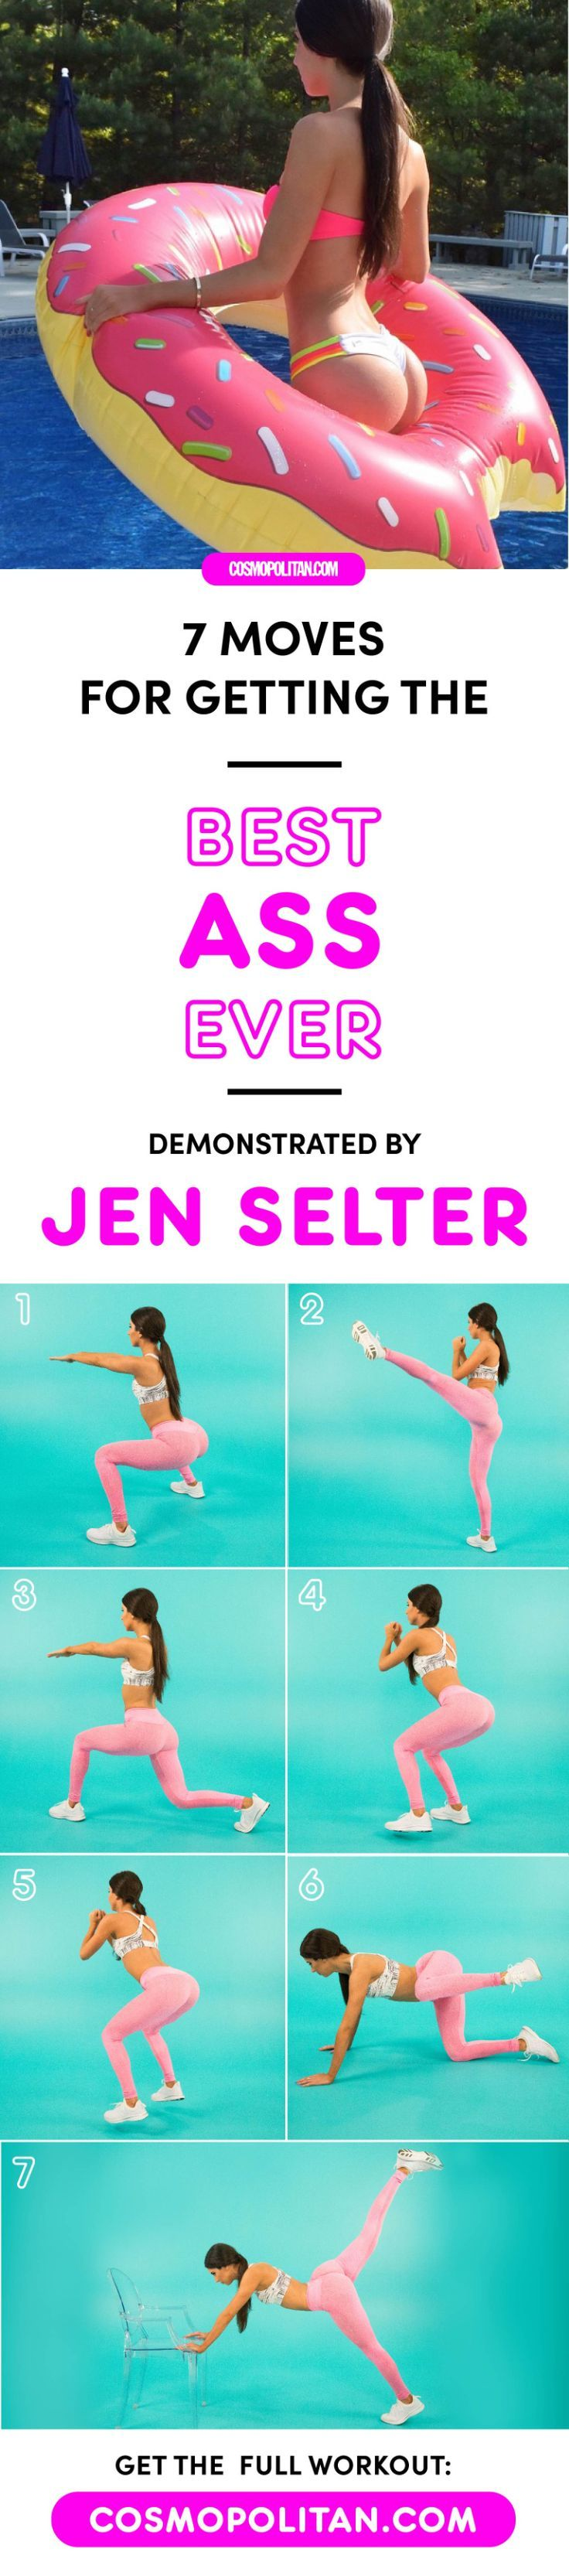 7 Moves for Getting the Best Ass Ever, Demonstrated by Jen Selter – brenda walsh